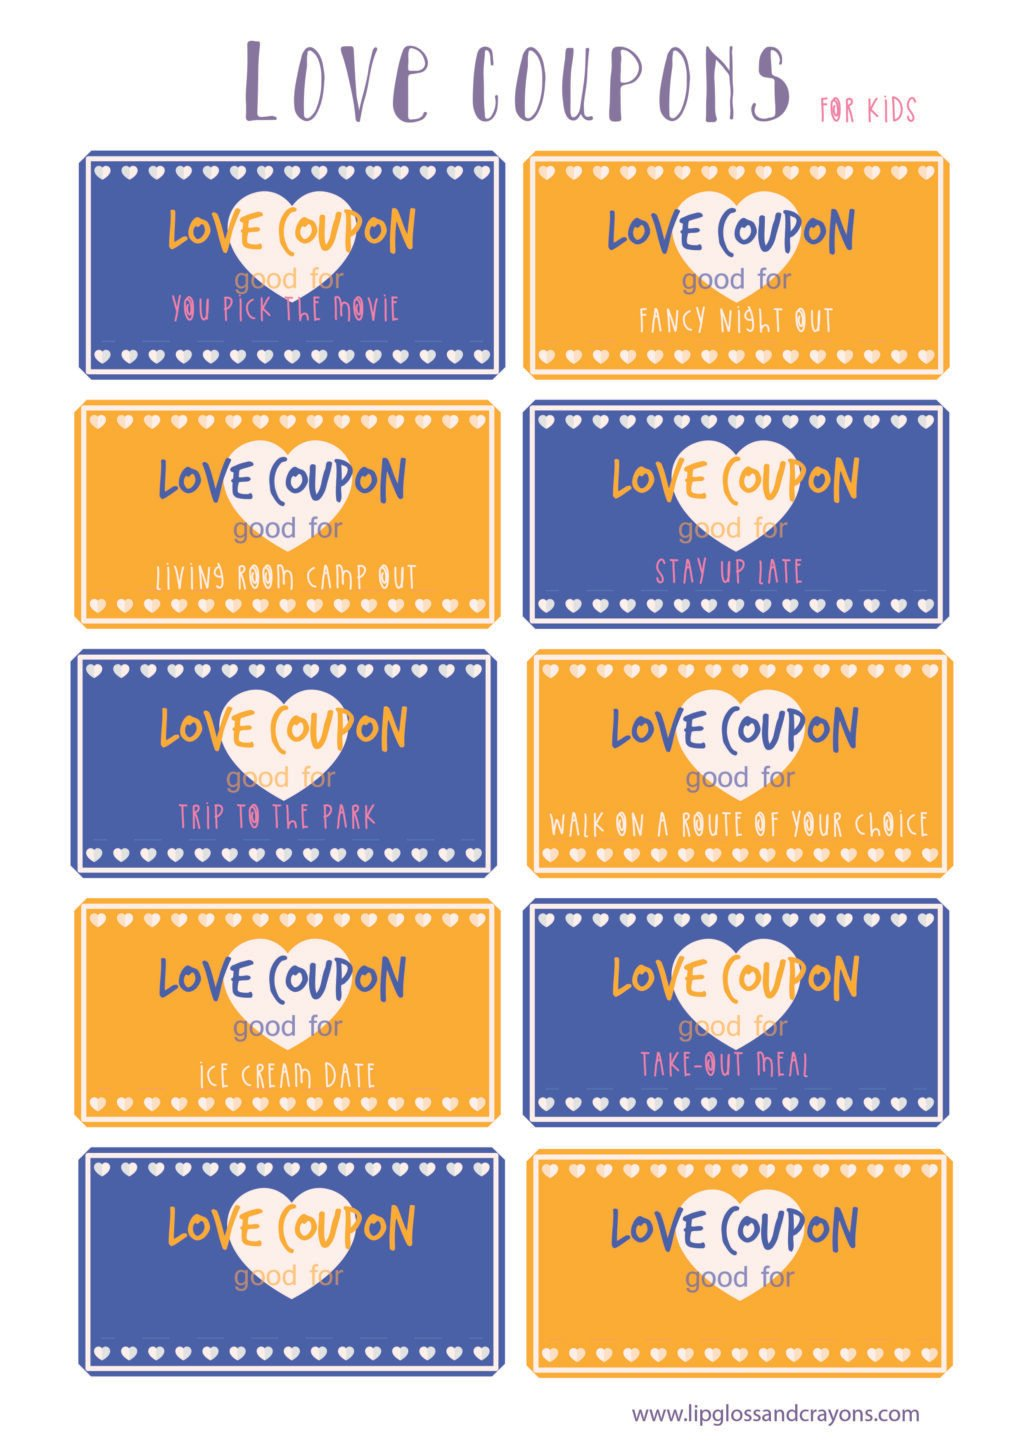 These love coupons for kids are the perfect valentine's day printable!